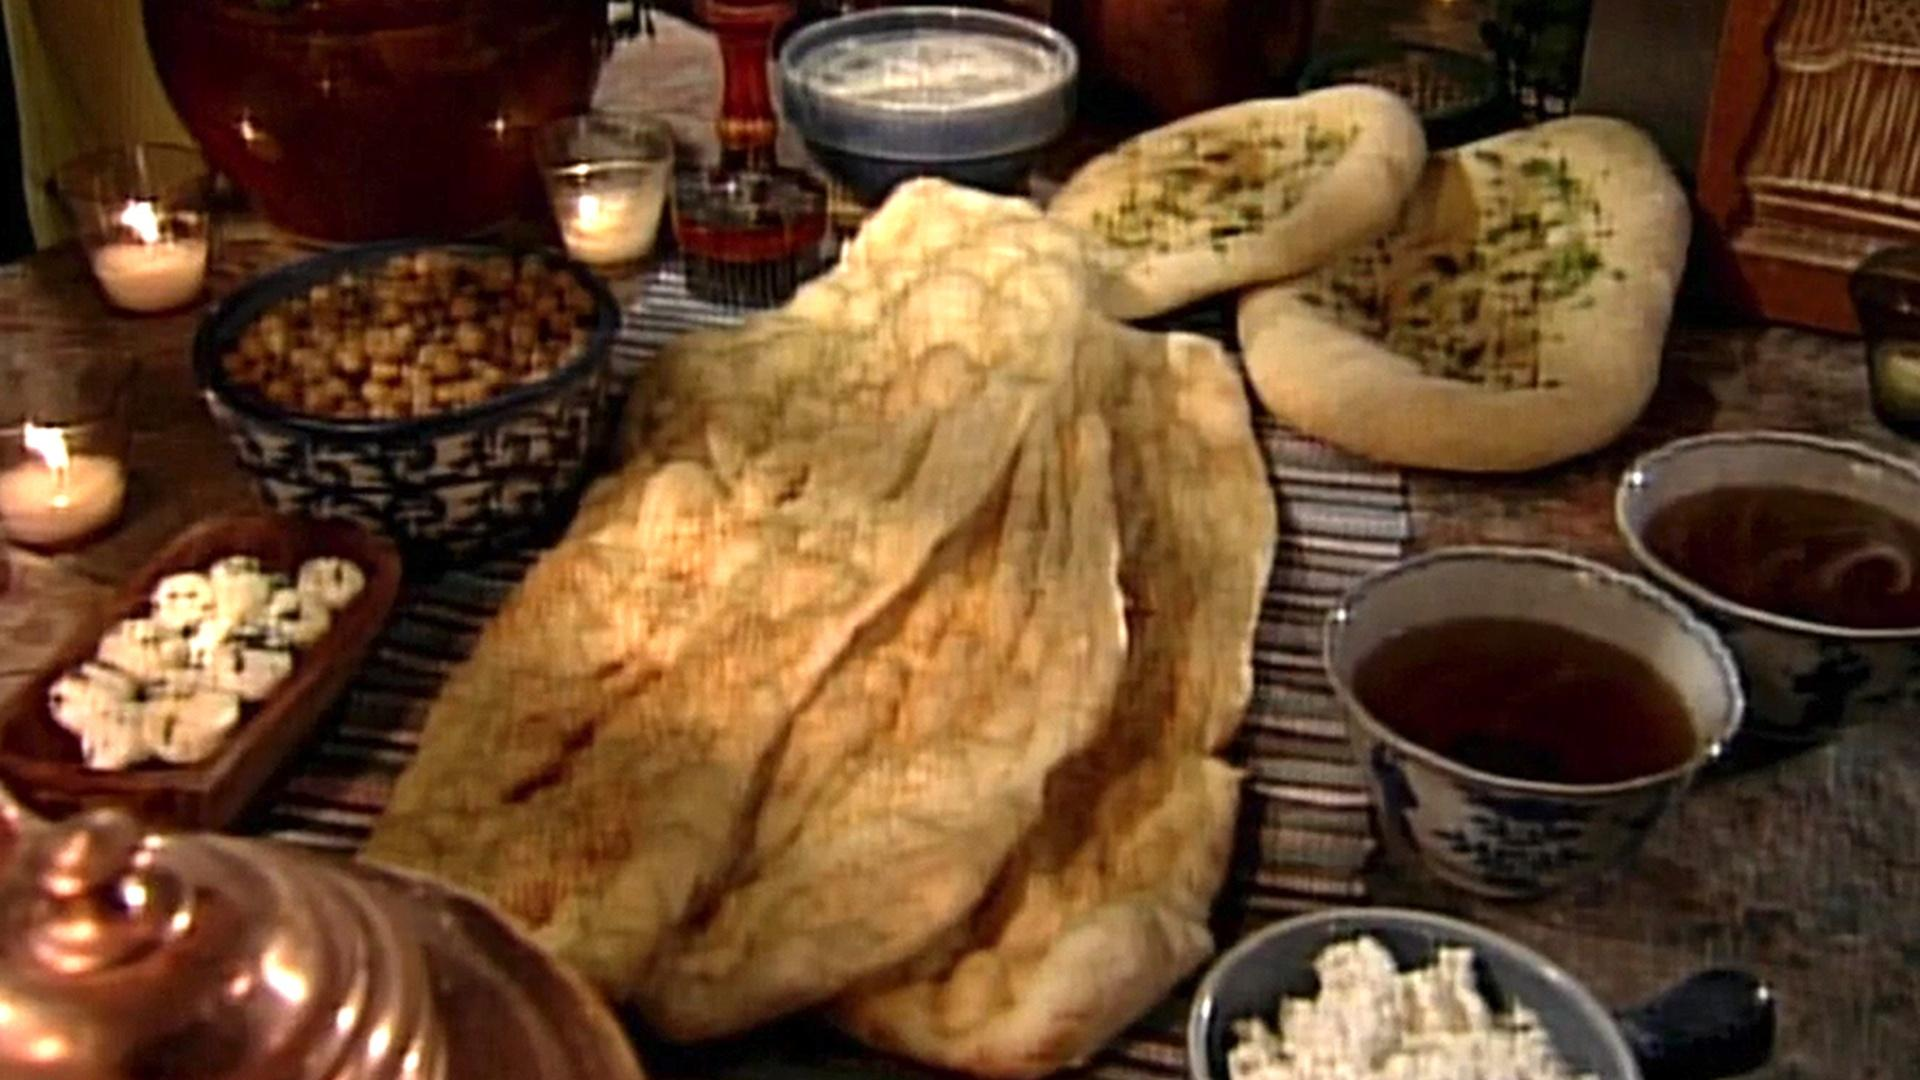 martha stewart glorious wedding cake recipe s3 e11 naan with beatrice ojakangas baking with 17190